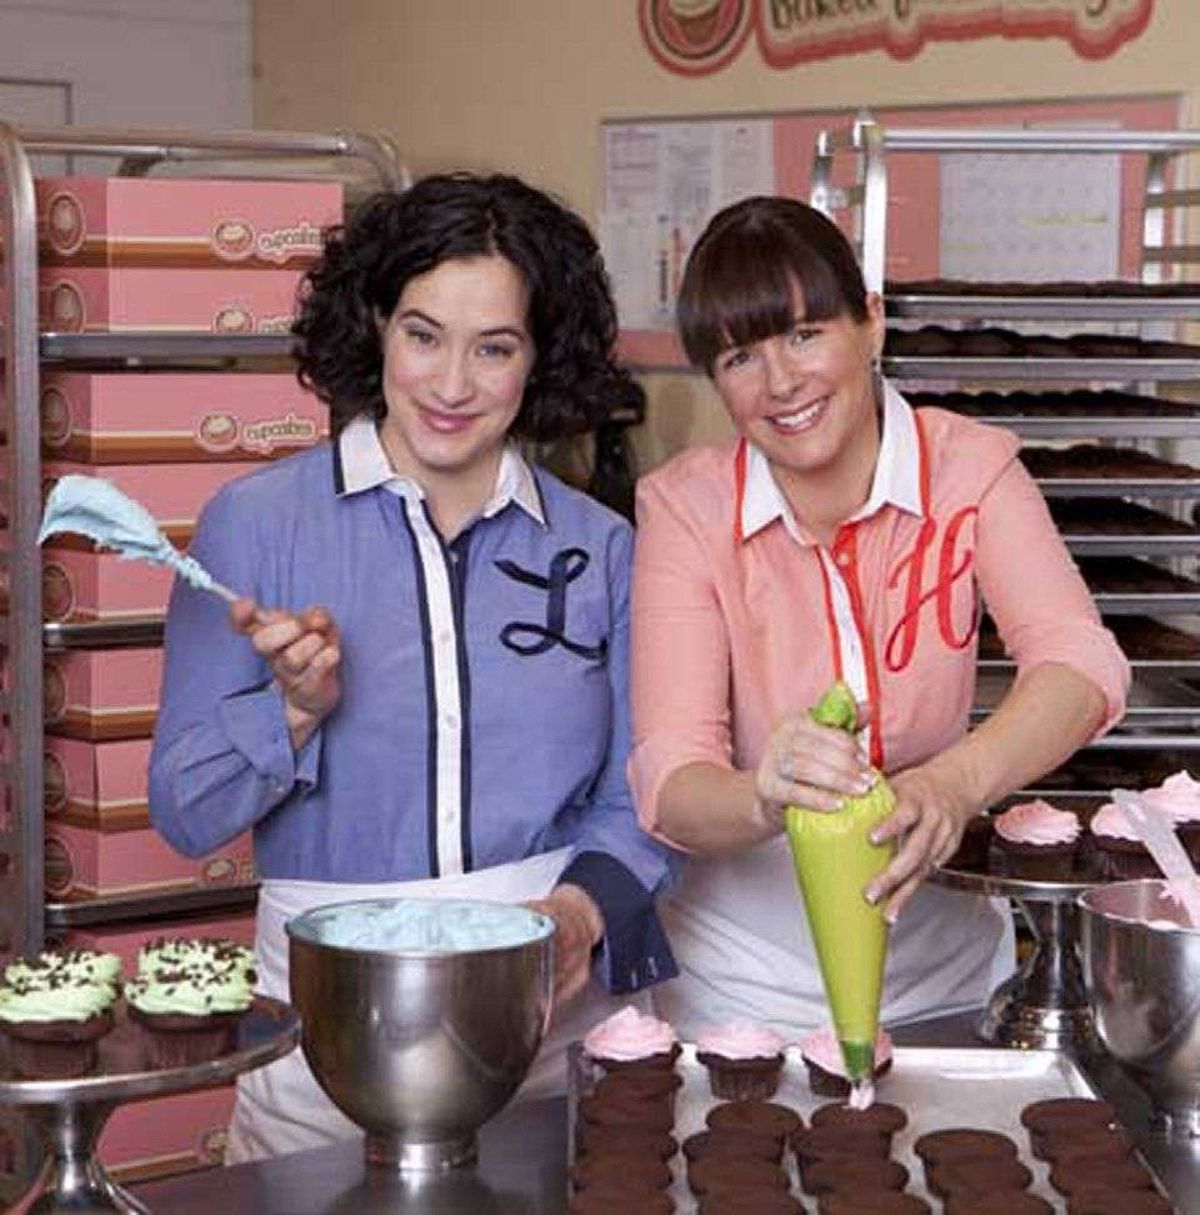 REALITY The Cupcake Girls W Network, 8 p.m. ET/PT Who knew the cupcake business was rife with drama? Currently in its third season, this freakishly popular series focuses on best friends Lori Joyce and Heather White, who run a successful cupcake business in Vancouver. As befits any successful businesswomen, both lead complicated lives beyond the icing and sprinkles. Past episodes have documented Lori's in vitro-fertilization treatment and Heather's ongoing struggle as a recovering alcoholic. In tonight's first new episode, the pair are tasked to create an elaborate cake for an event, while Heather's father Brian, the usual deliveryman, gets into hot water for accumulating multiple parking tickets. In the second show, Heather tries to make cupcakes with flavoured vodka.